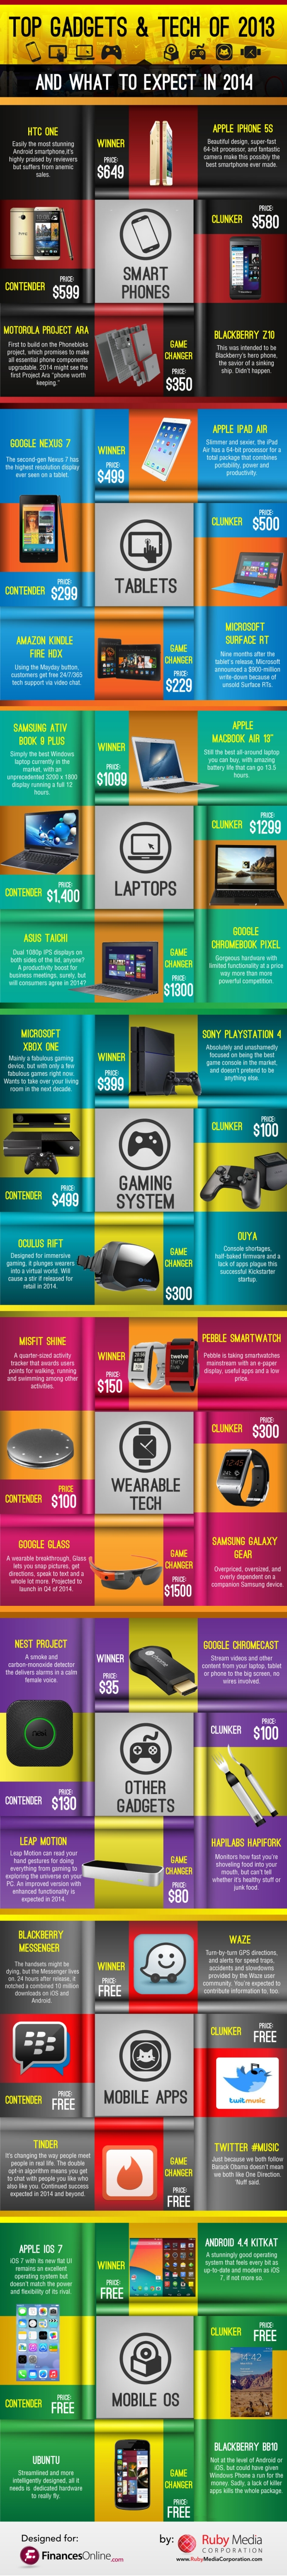 top-gadgets-2013-infographic